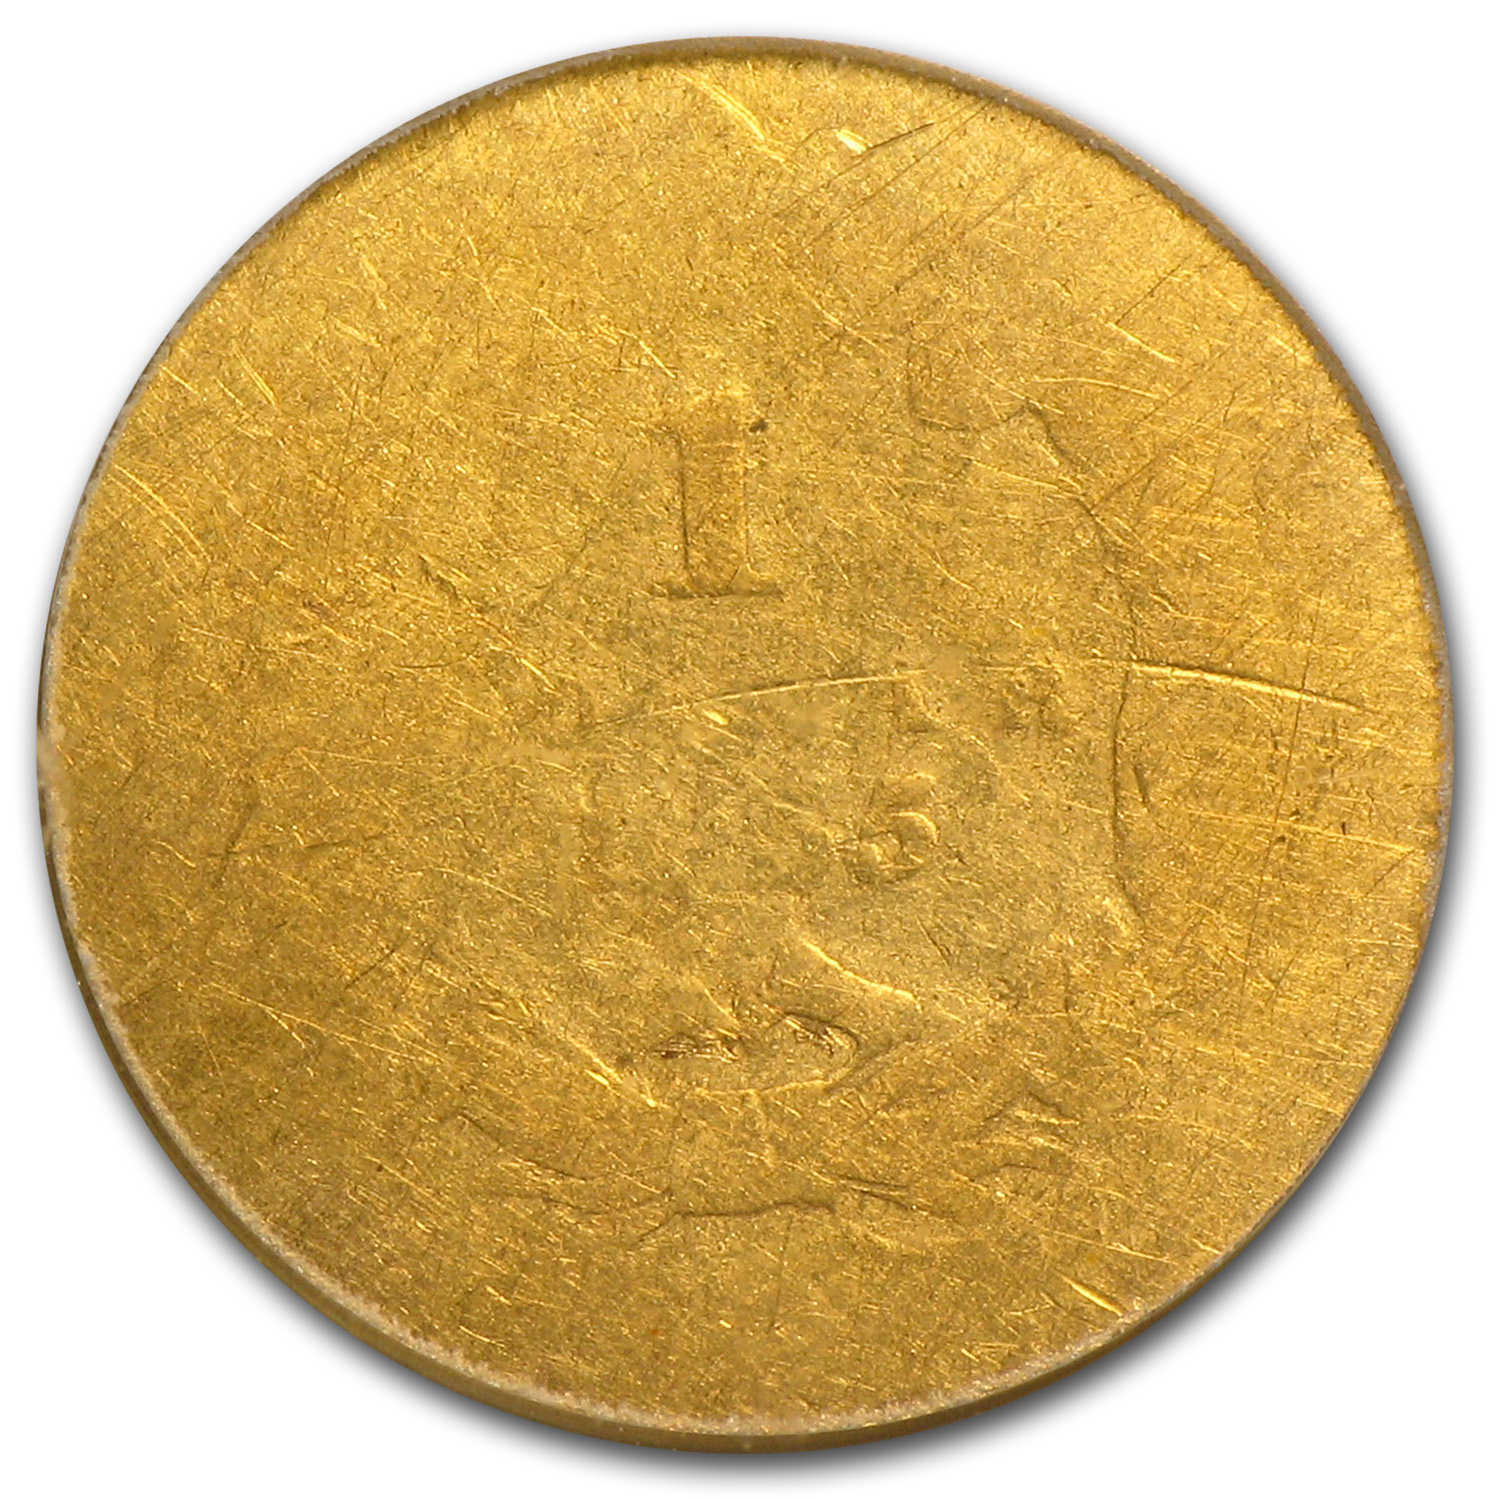 1855 $1 Indian Head Gold Fair-2 PCGS (Low Ball Registry)